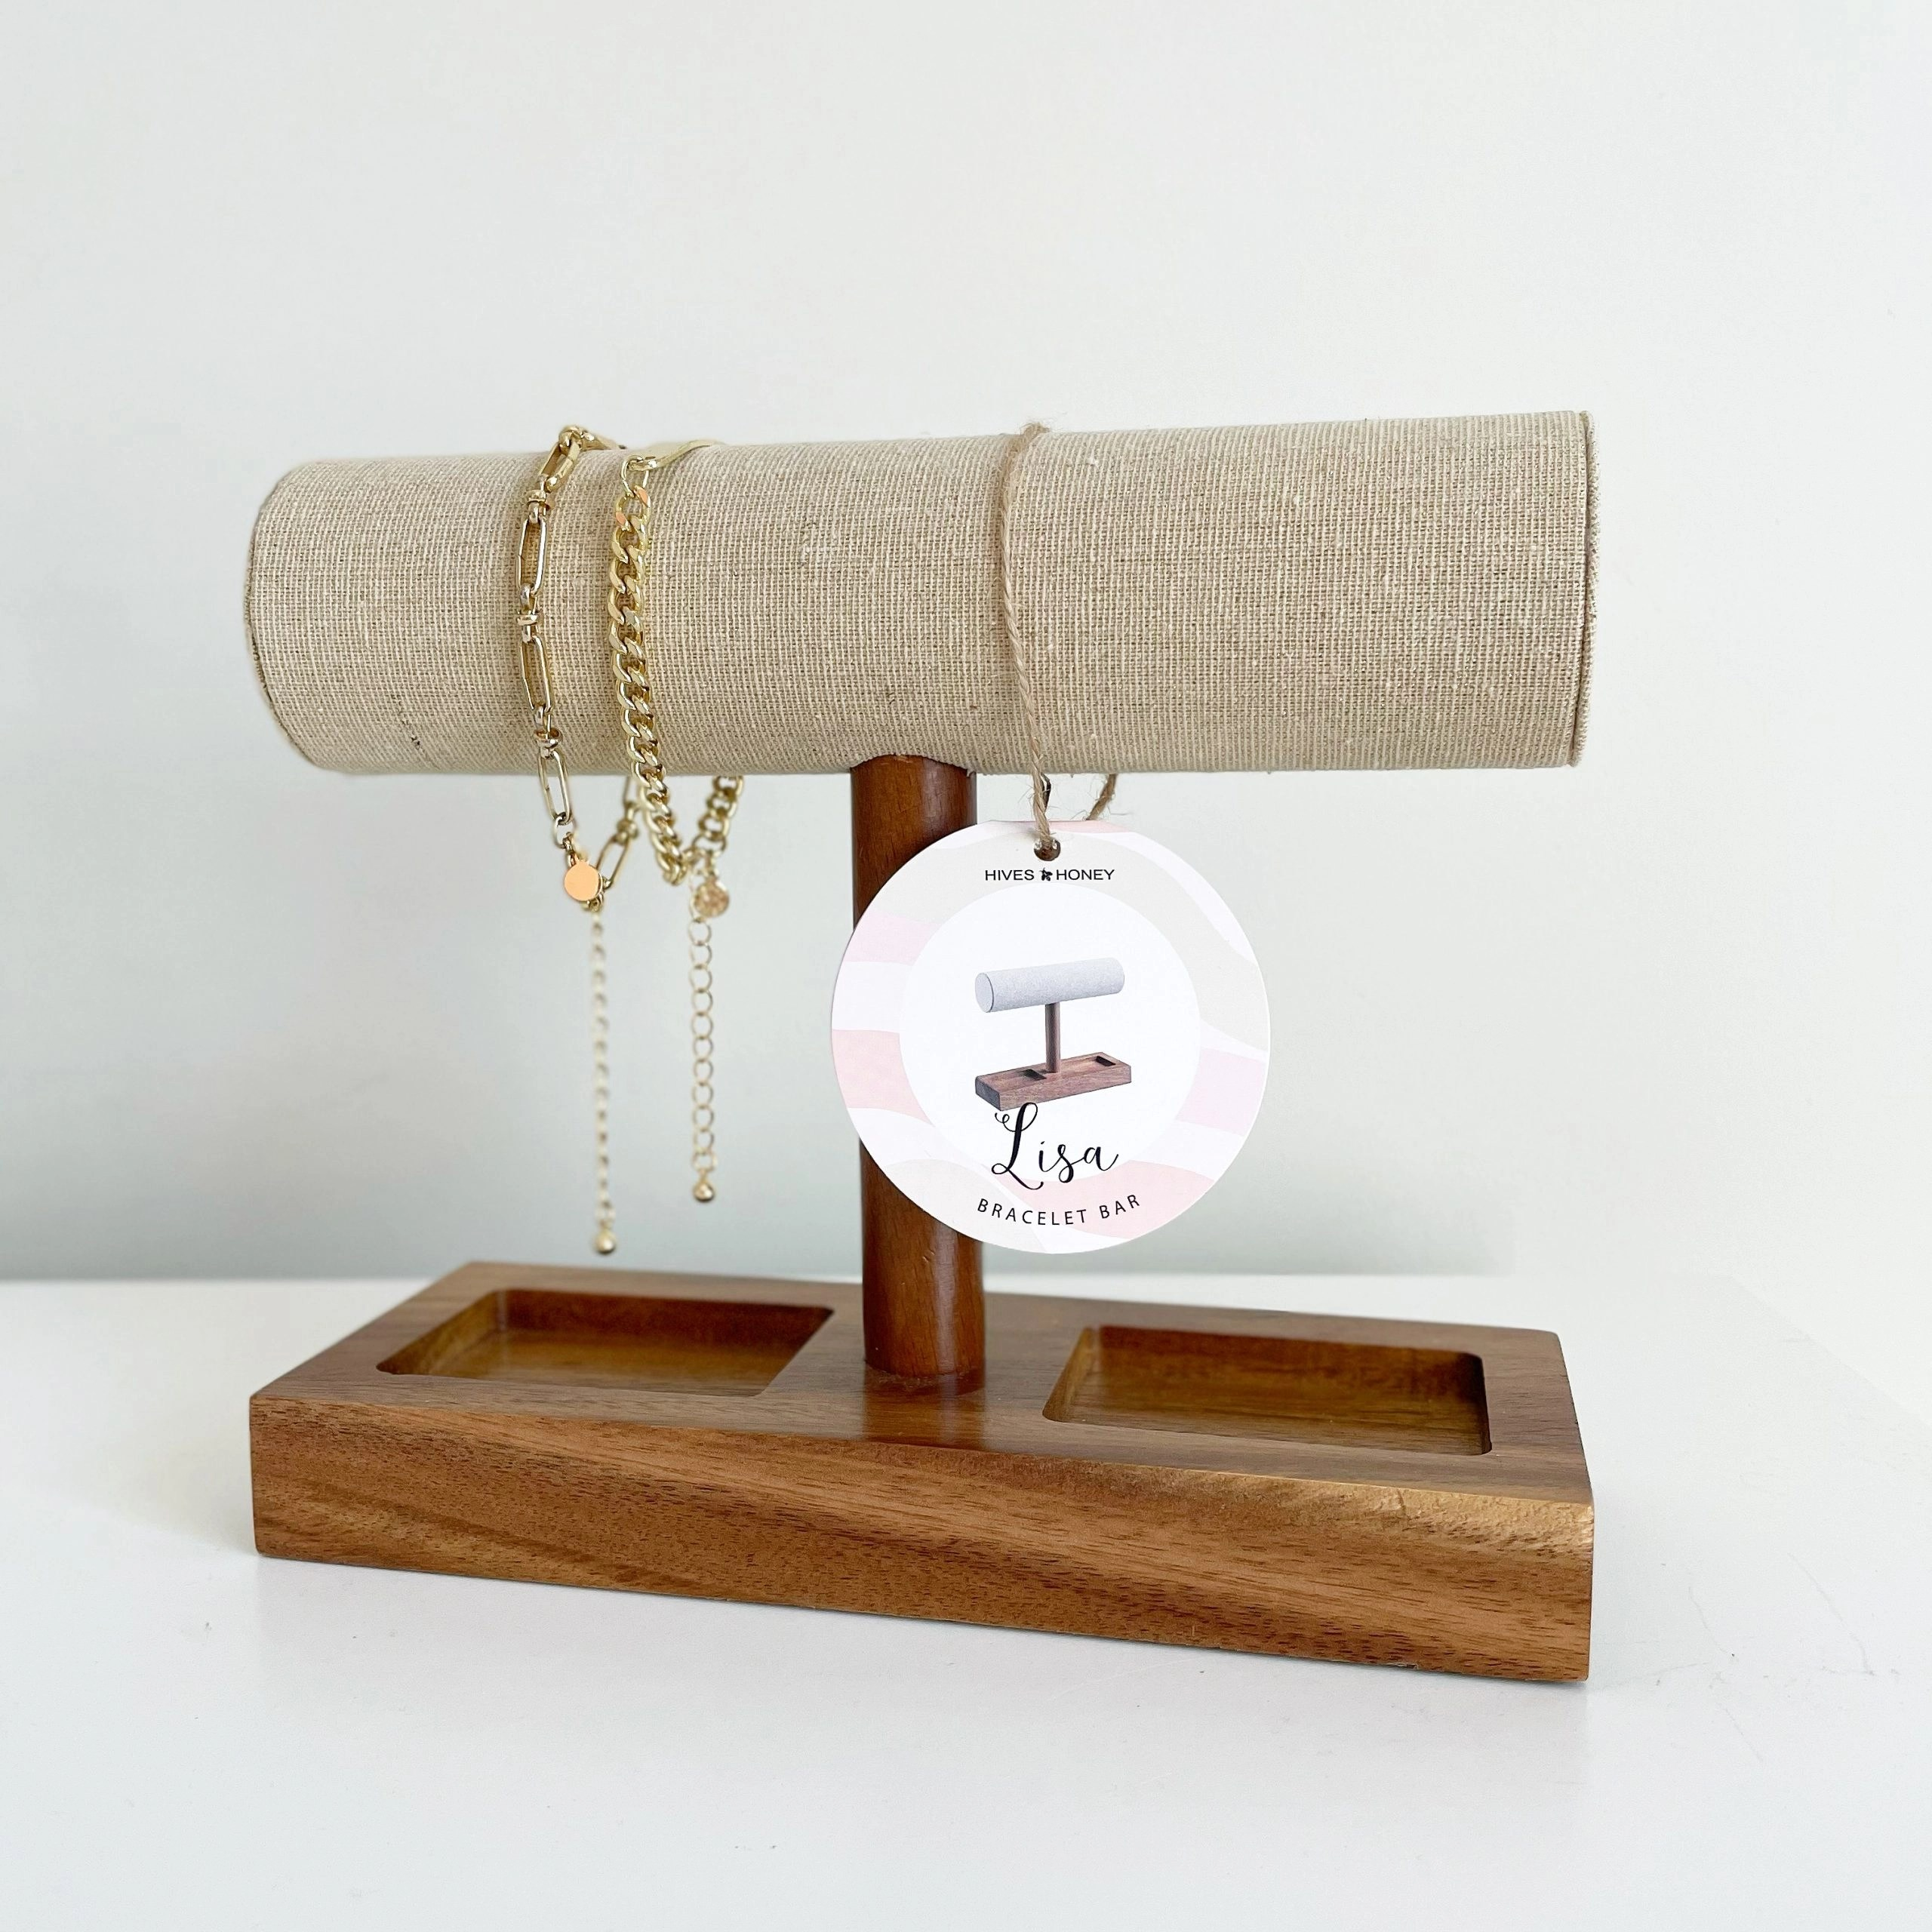 Hives and Honey Lisa Jewelry Organizer Display Stand- Bracelet and Watch Holder Display Stand, Natural Linen T-Bar Table Top Jewelry Tower, and Scoop bracelet set